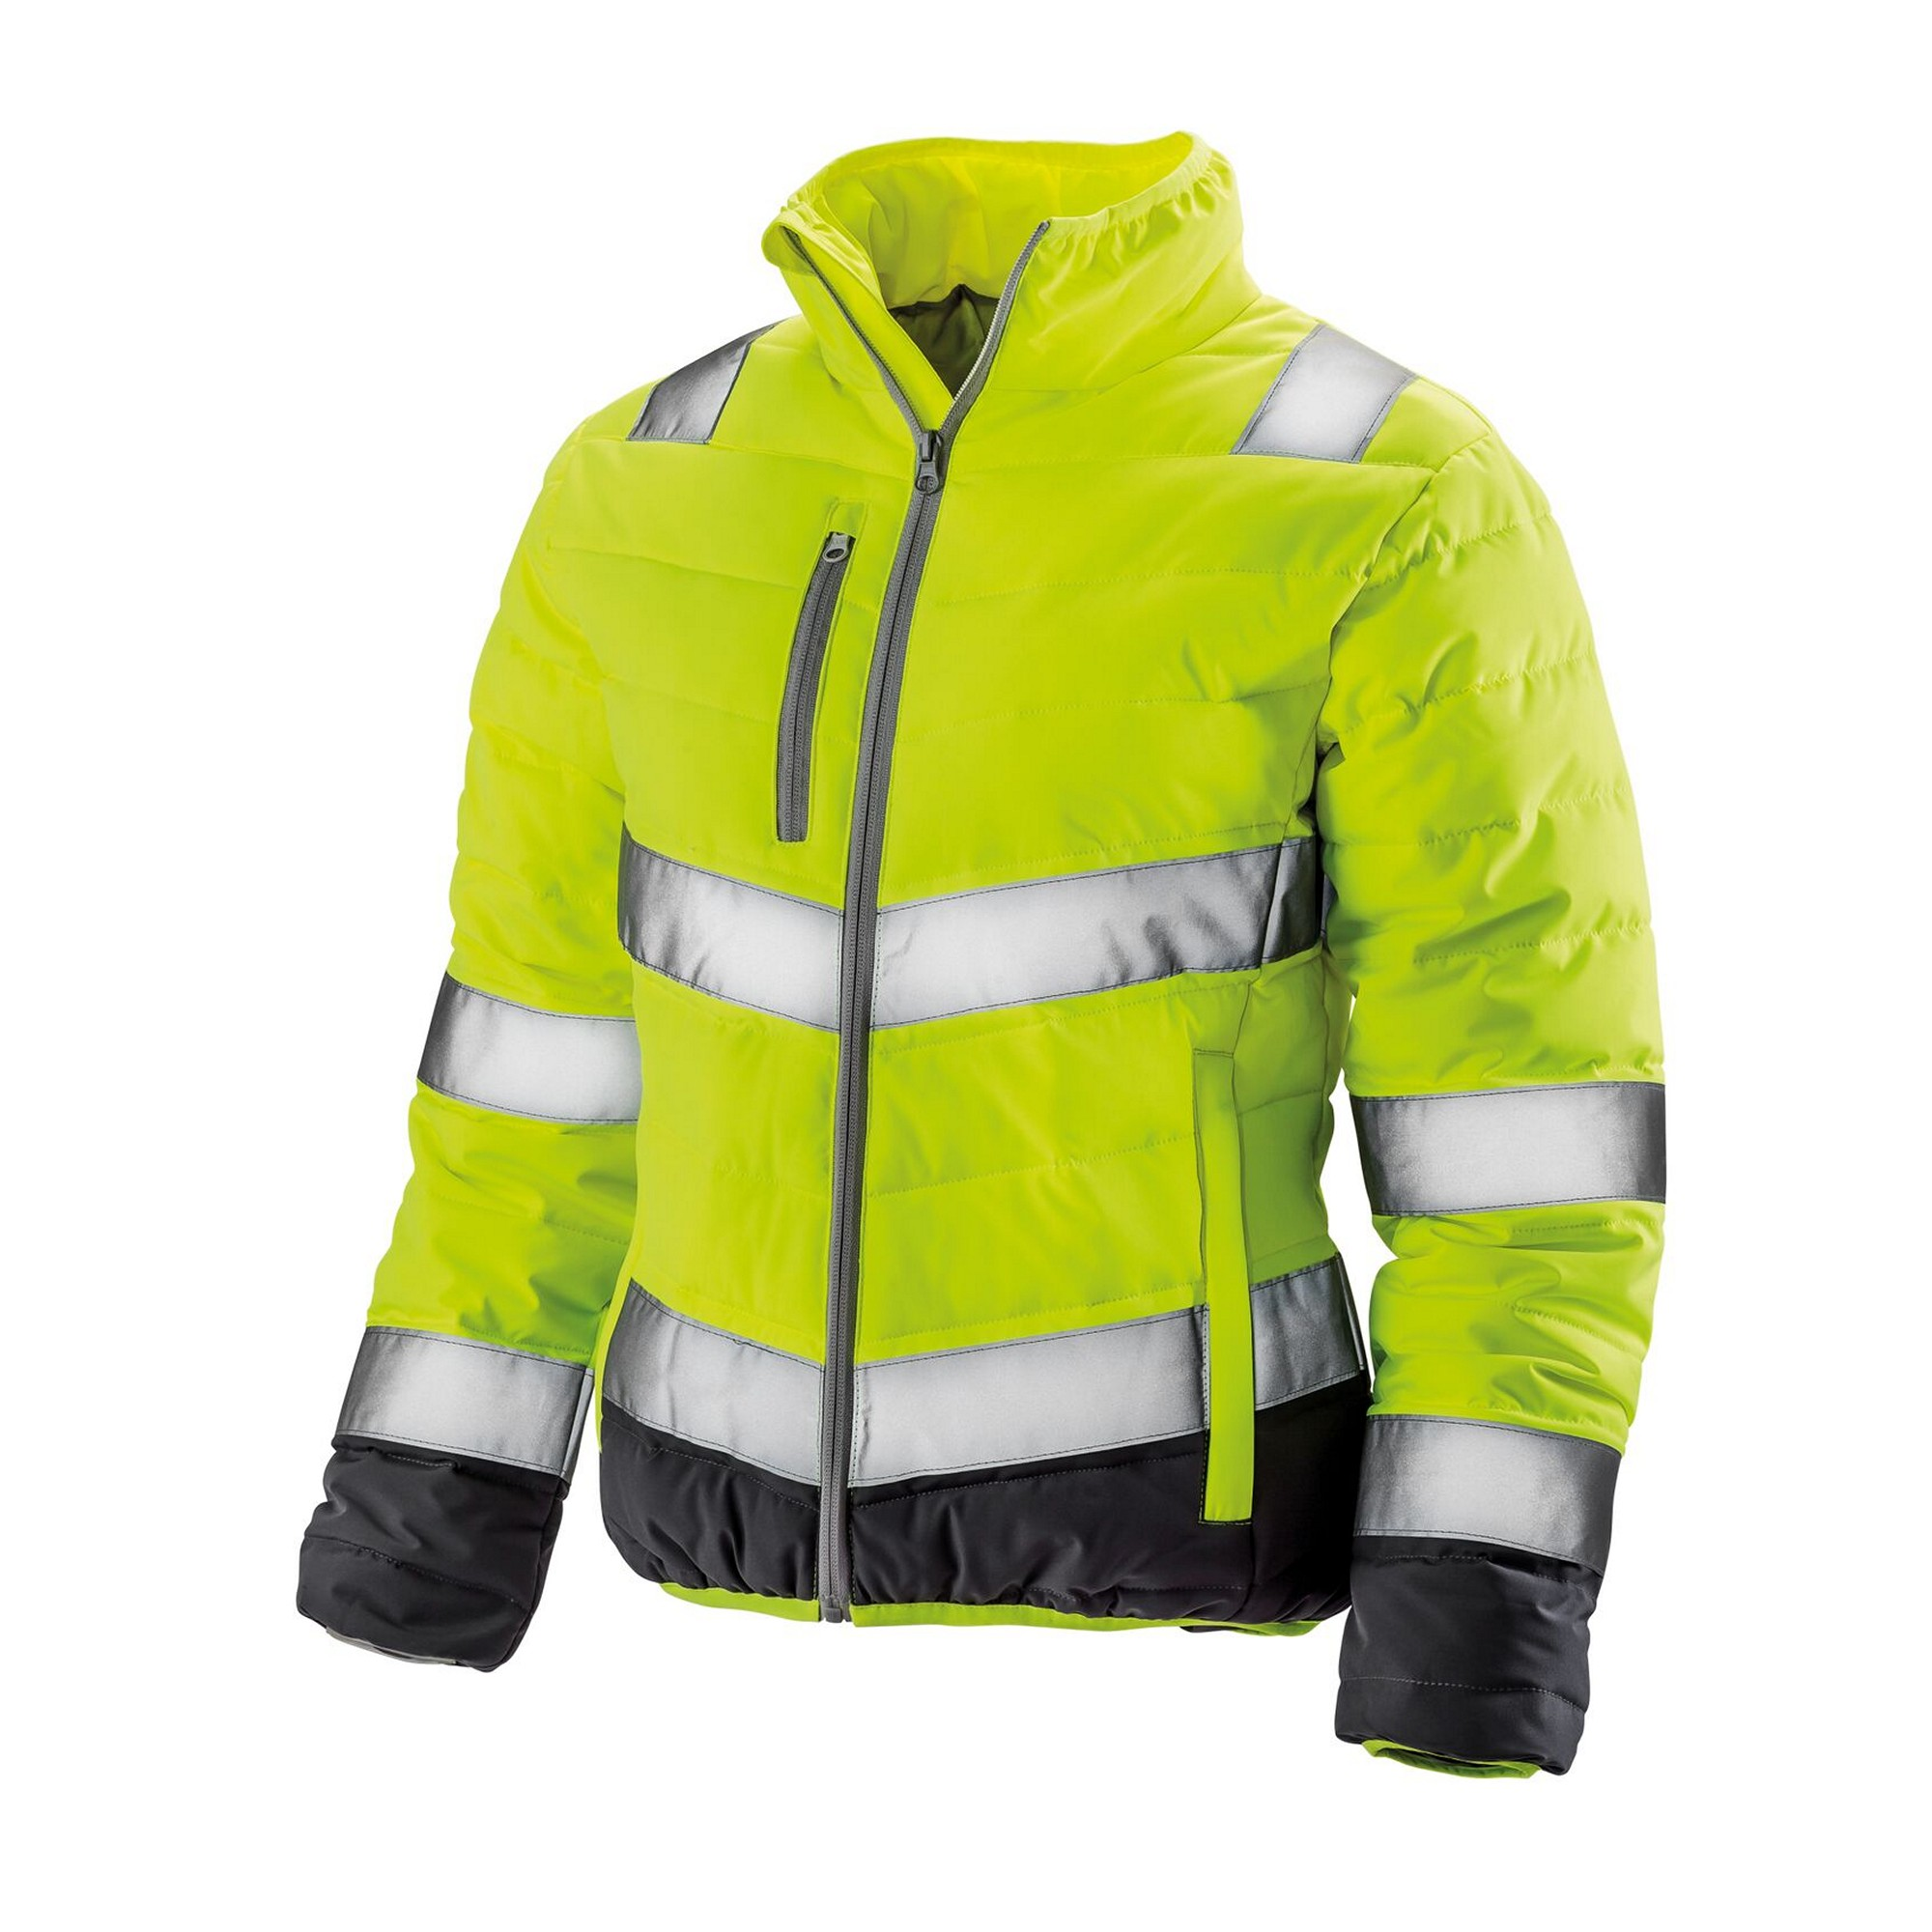 Result Womens/Ladies Safe-Guard Soft Safety Jacket (XL) (Fluorescent Yellow/Grey)